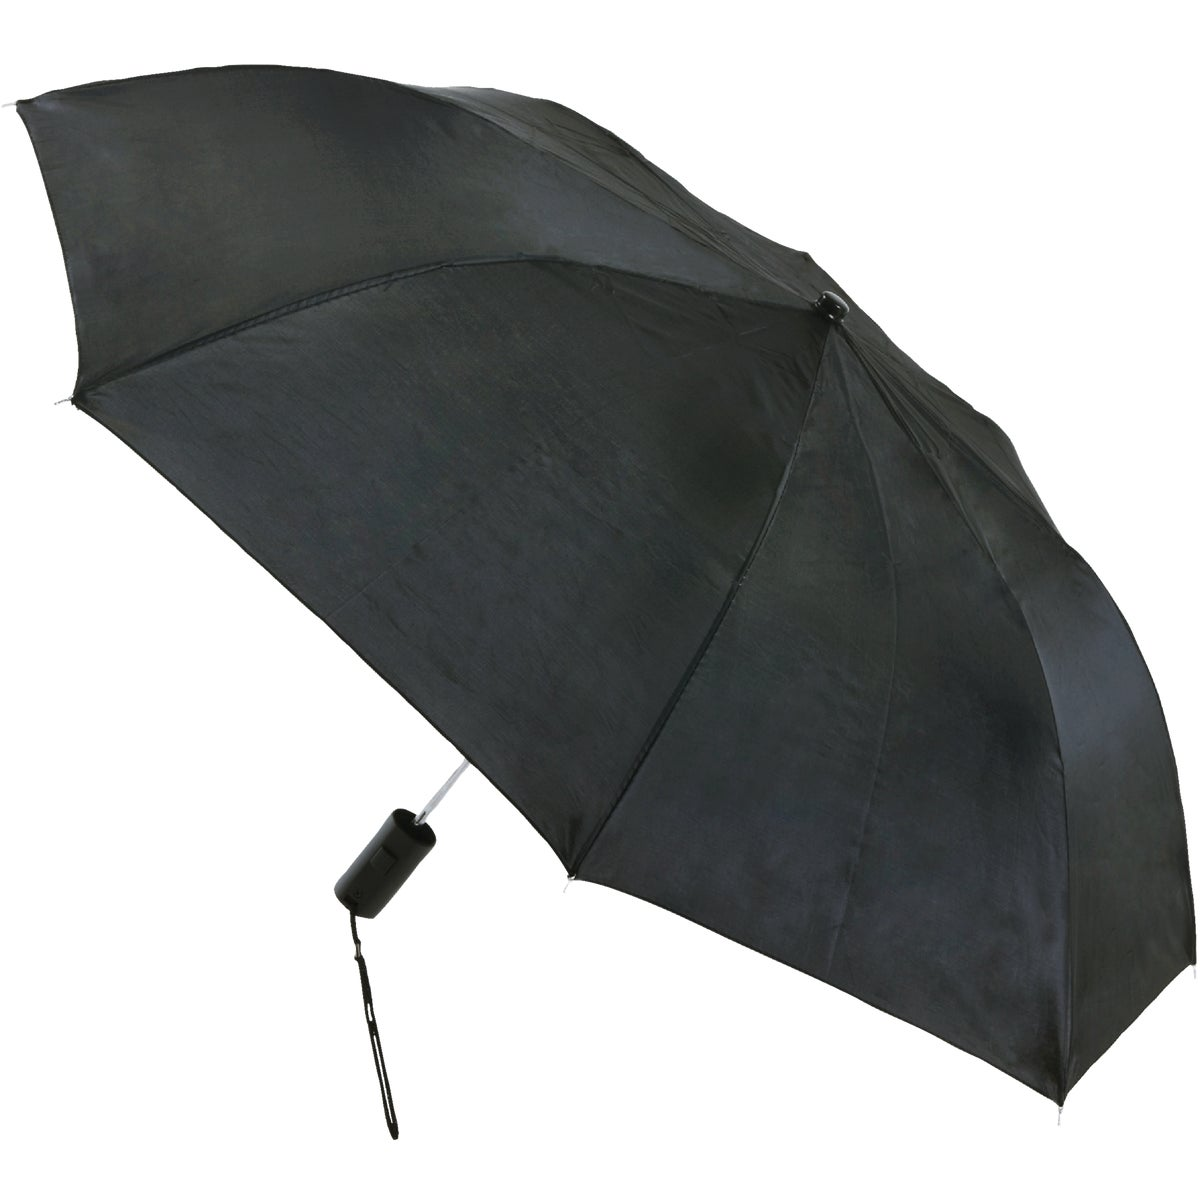 42 IN AUTOFOLD UMBRELLA